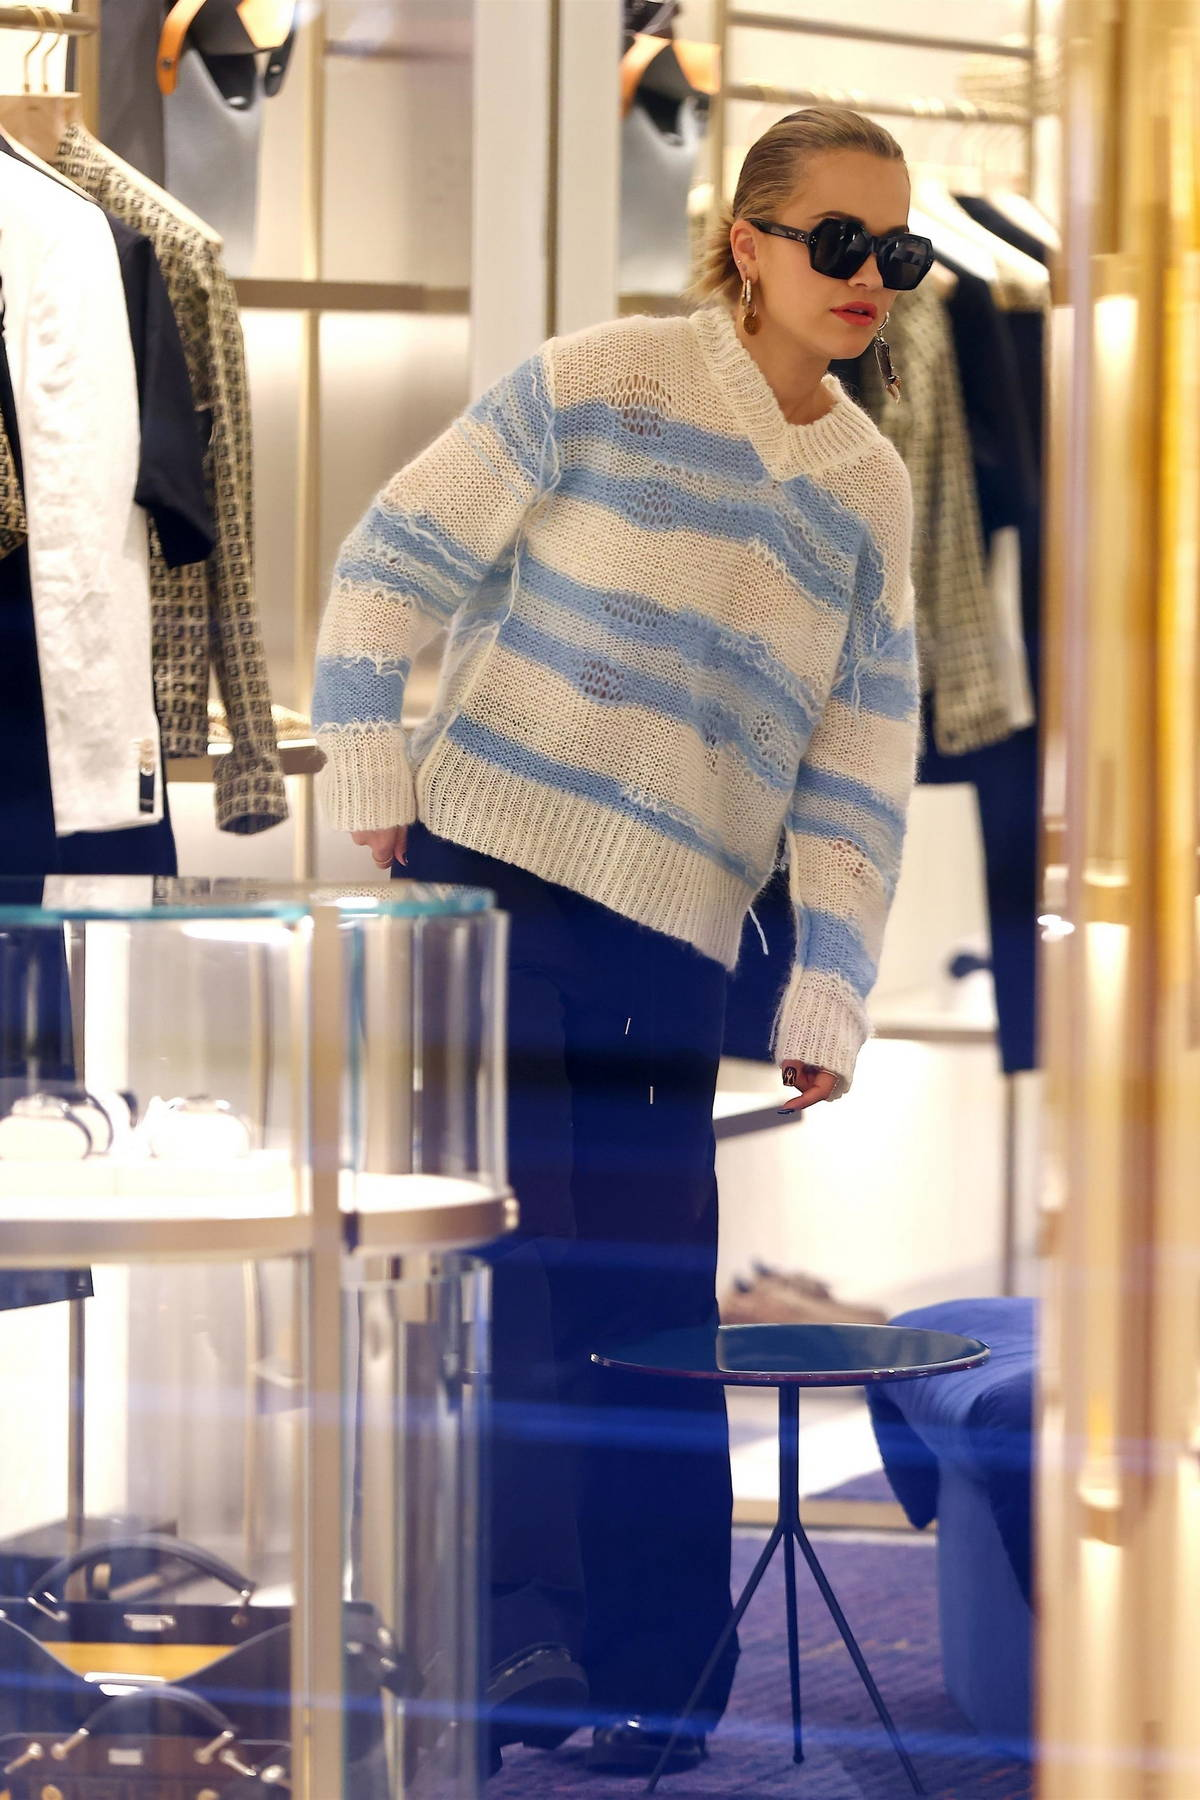 Rita Ora looks cool in a distressed sweater while shopping at a Fendi Store with Elsa Pataky in Sydney, Australia